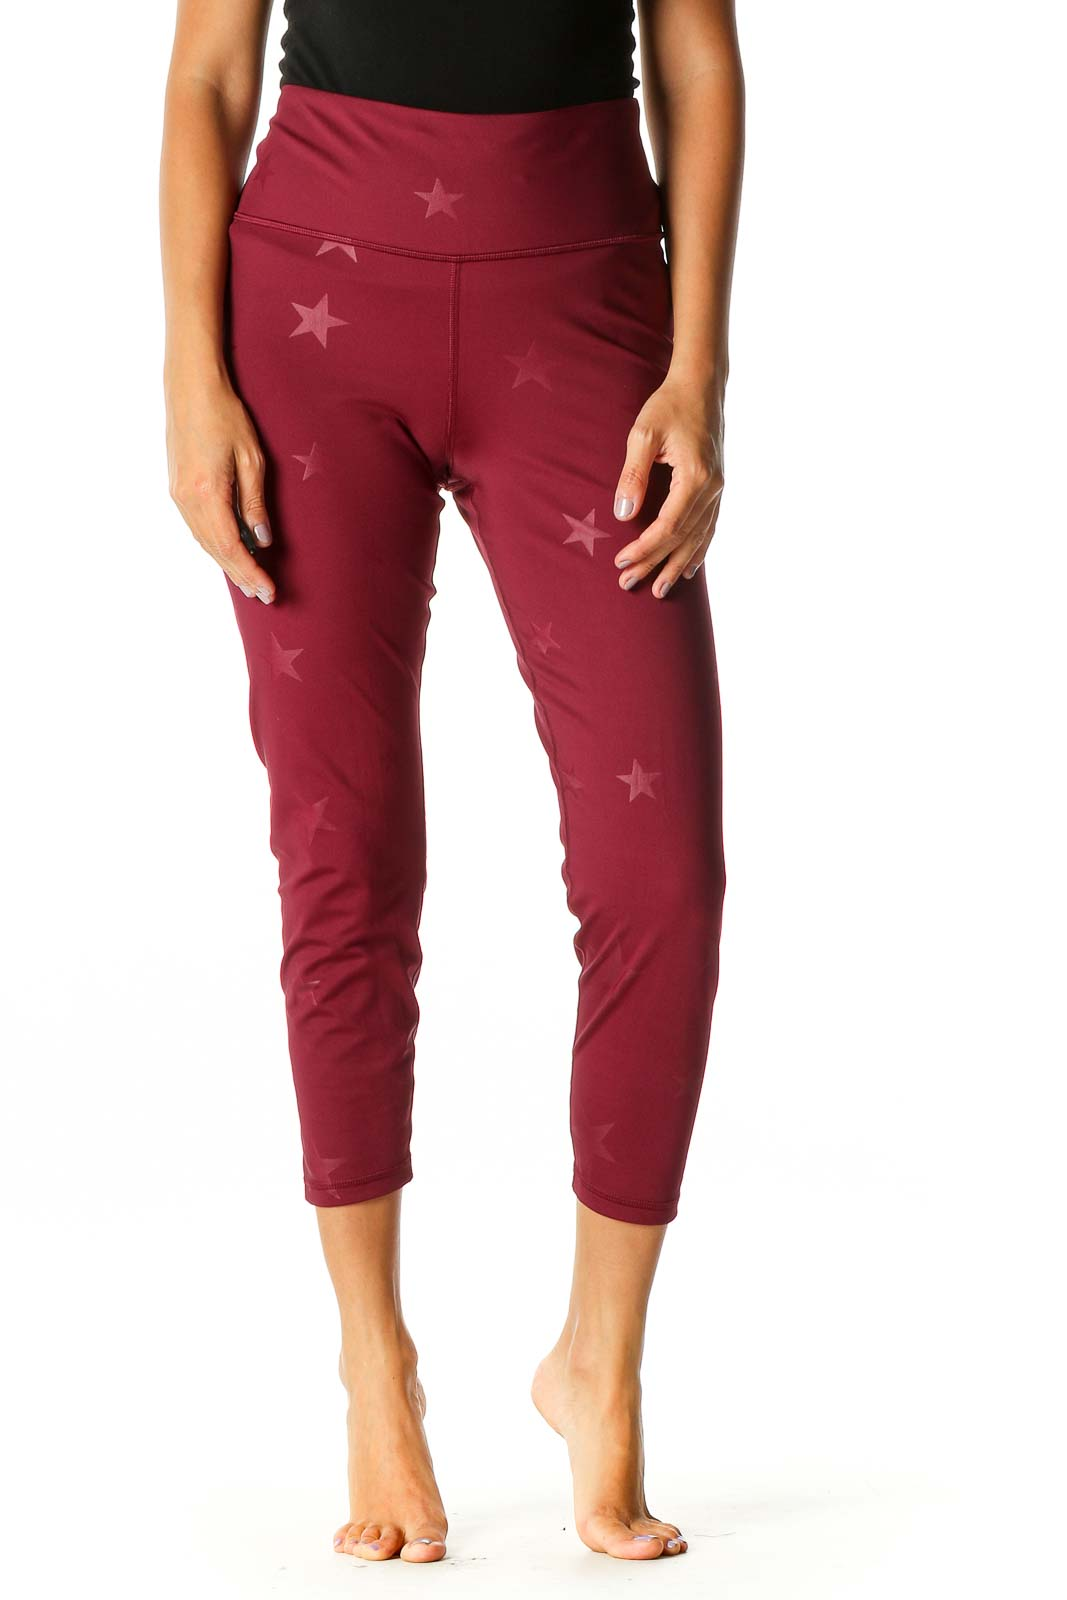 Red Spots Objects Activewear Leggings Front